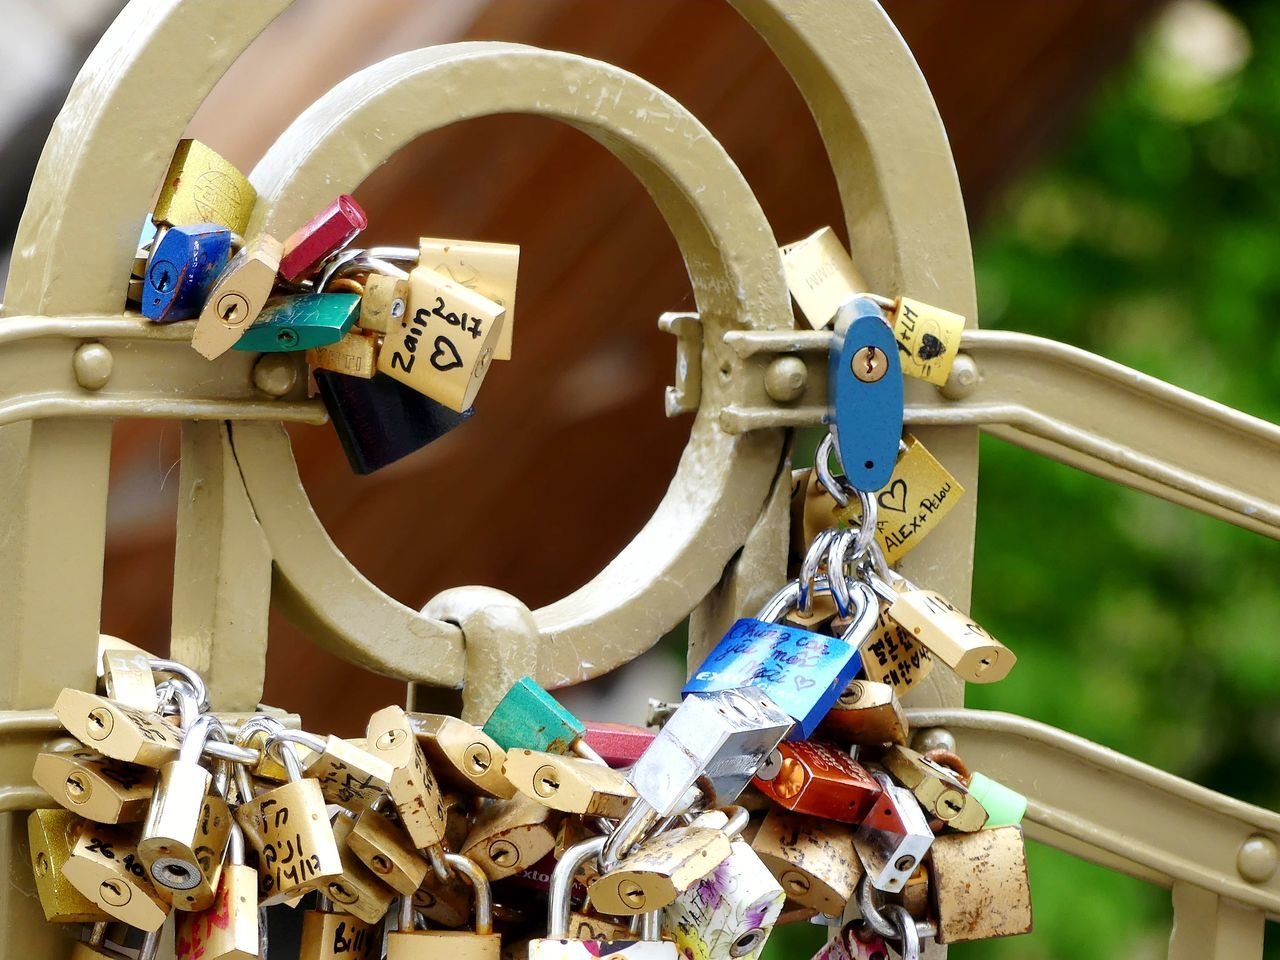 Locks Locks Of Love Love Bridge Love No Edit/no Filter Love Locks Bridge Locks And Keys Tradition Cult Cultures Colorful Whishes Whish You Were Here Whish Romantic Break The Mold Streetphotography The Street Photographer - 2017 EyeEm Awards The Photojournalist - 2017 EyeEm Awards